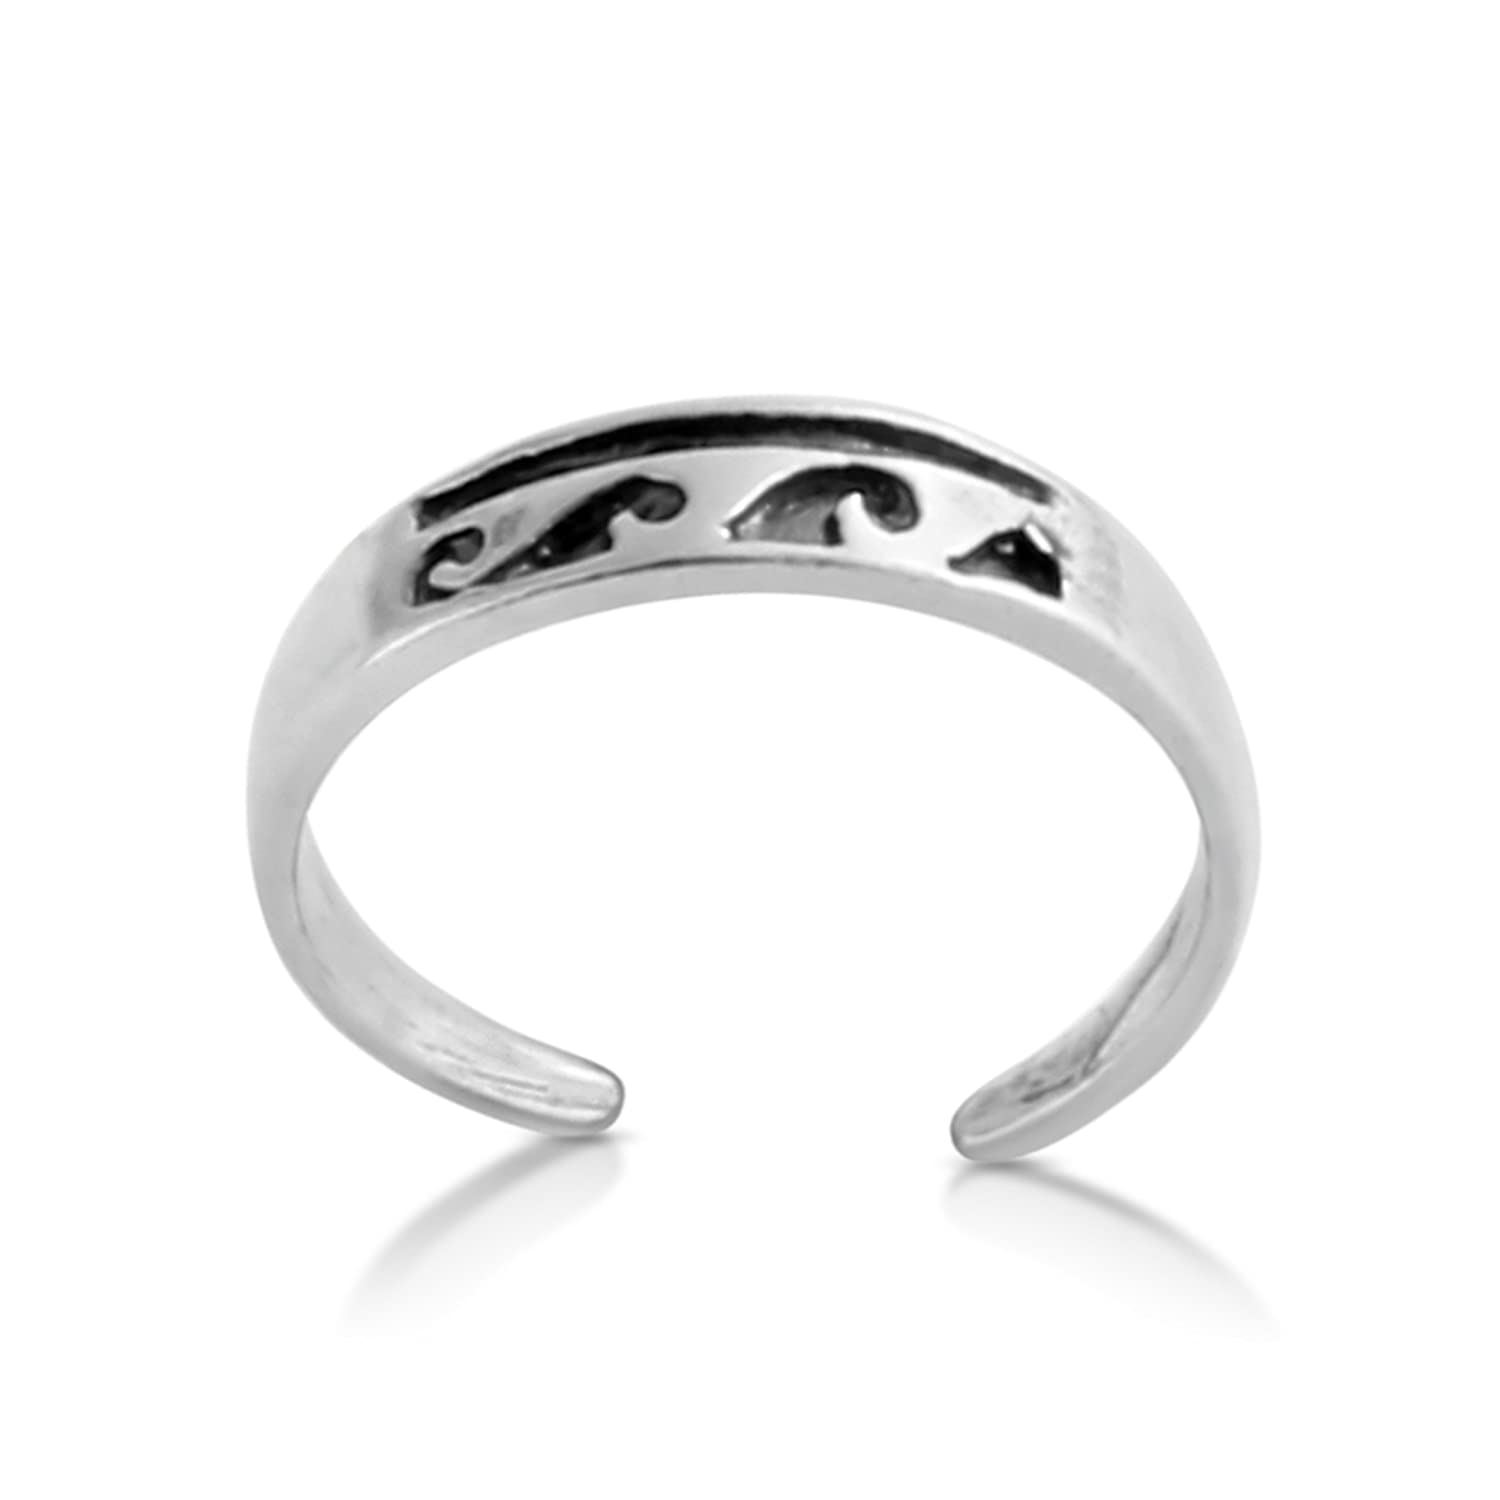 Belcho USA Sterling Silver Handcrafted Stylized Waves Adjustable Toe Ring TR0313